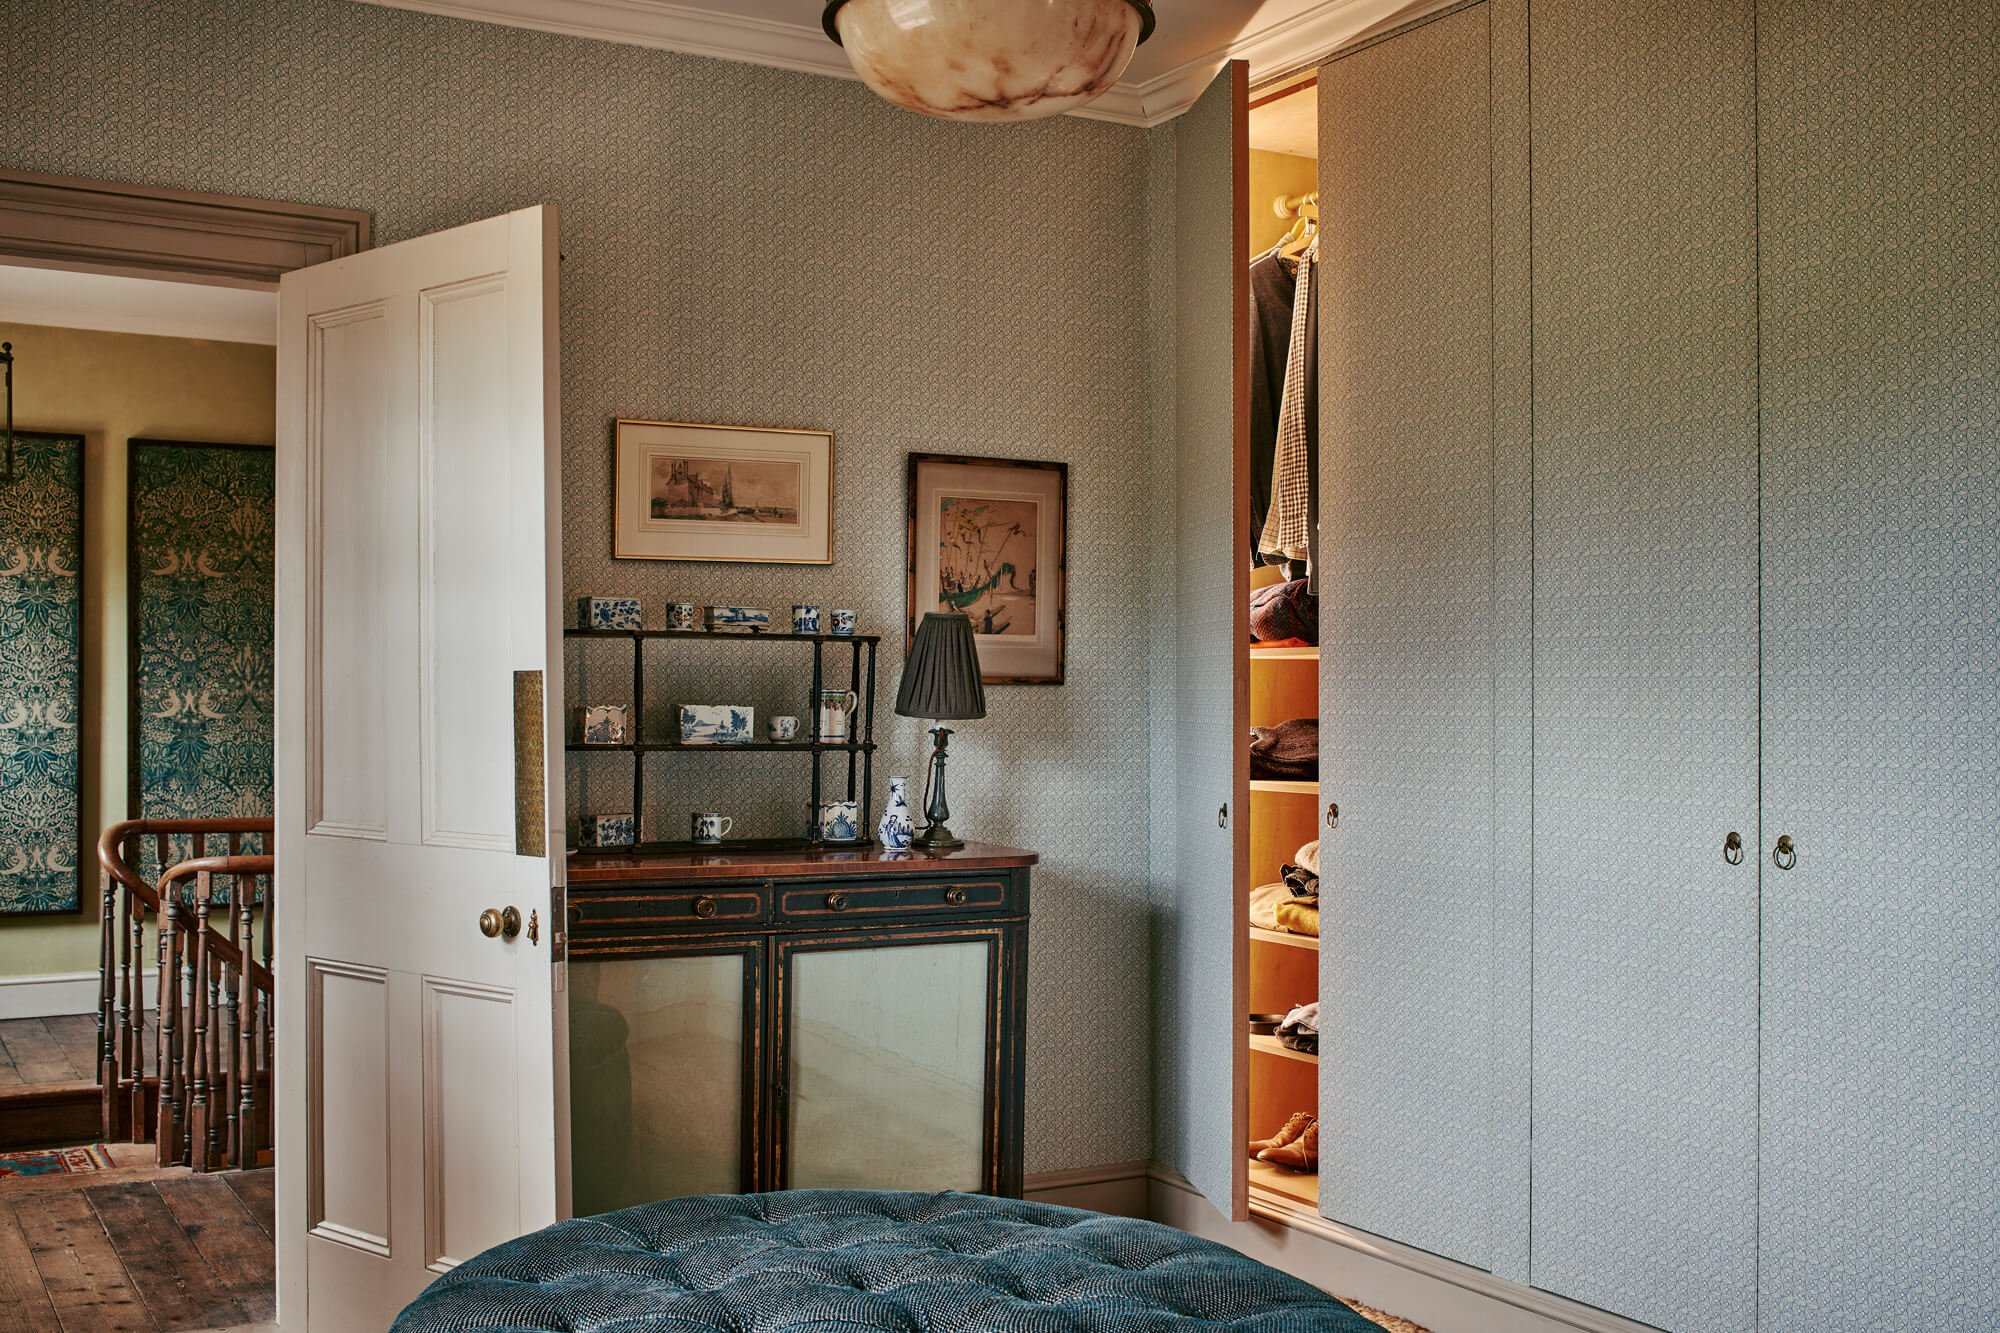 bwedroom wardrobes with wall paper